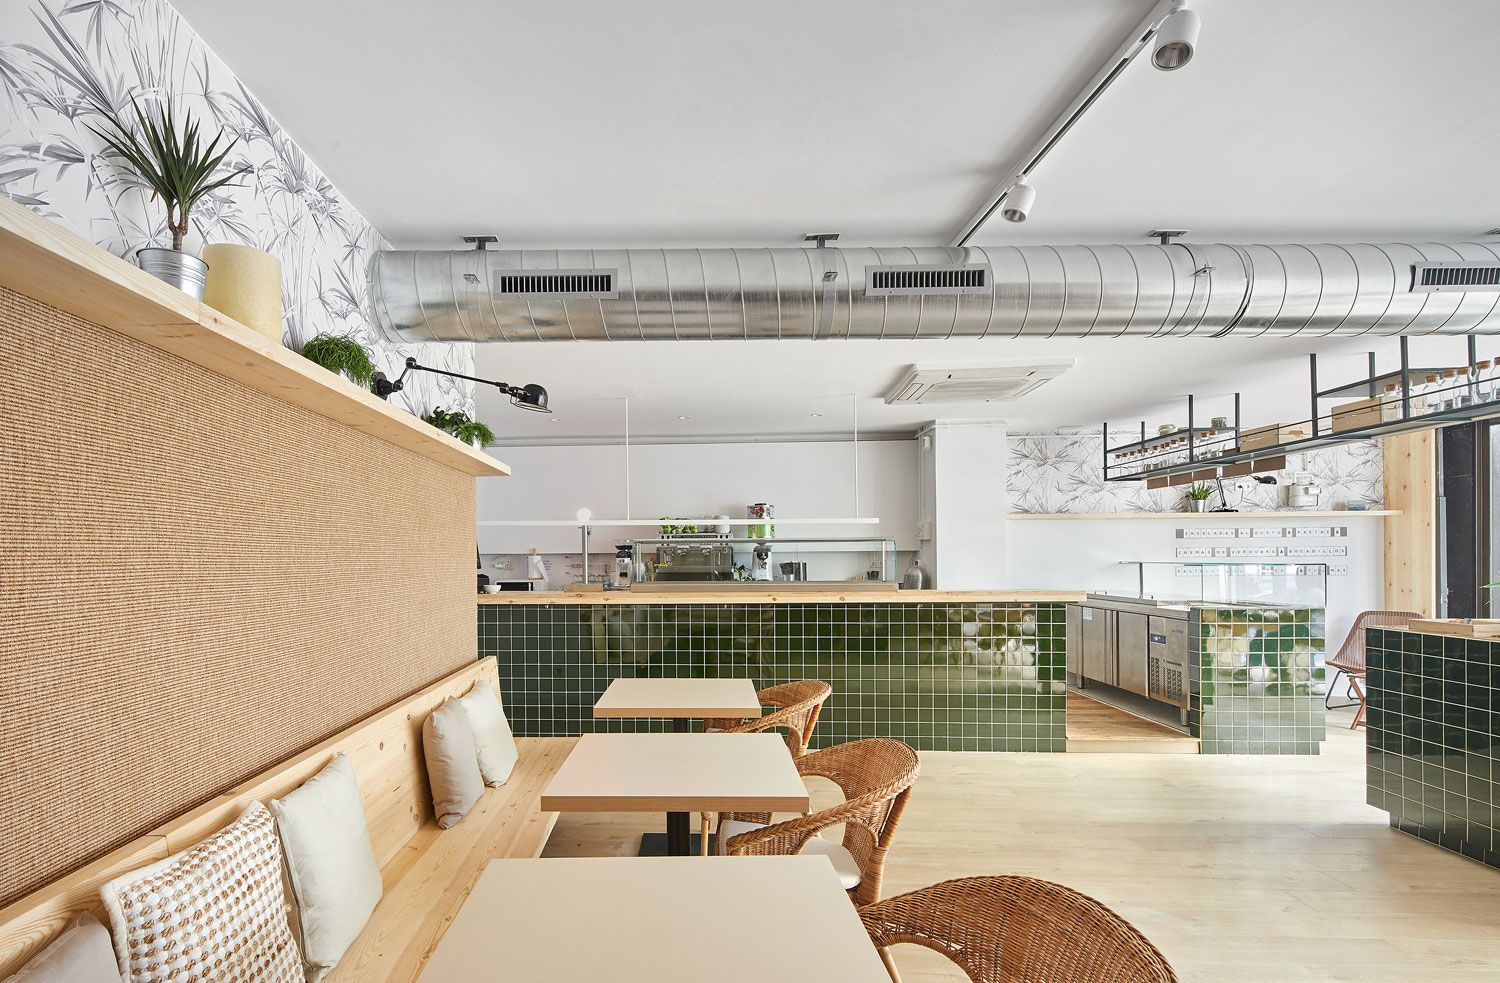 Verd go restaurant in barcelona by scala studio restaurants verd go restaurant in barcelona by scala studio malvernweather